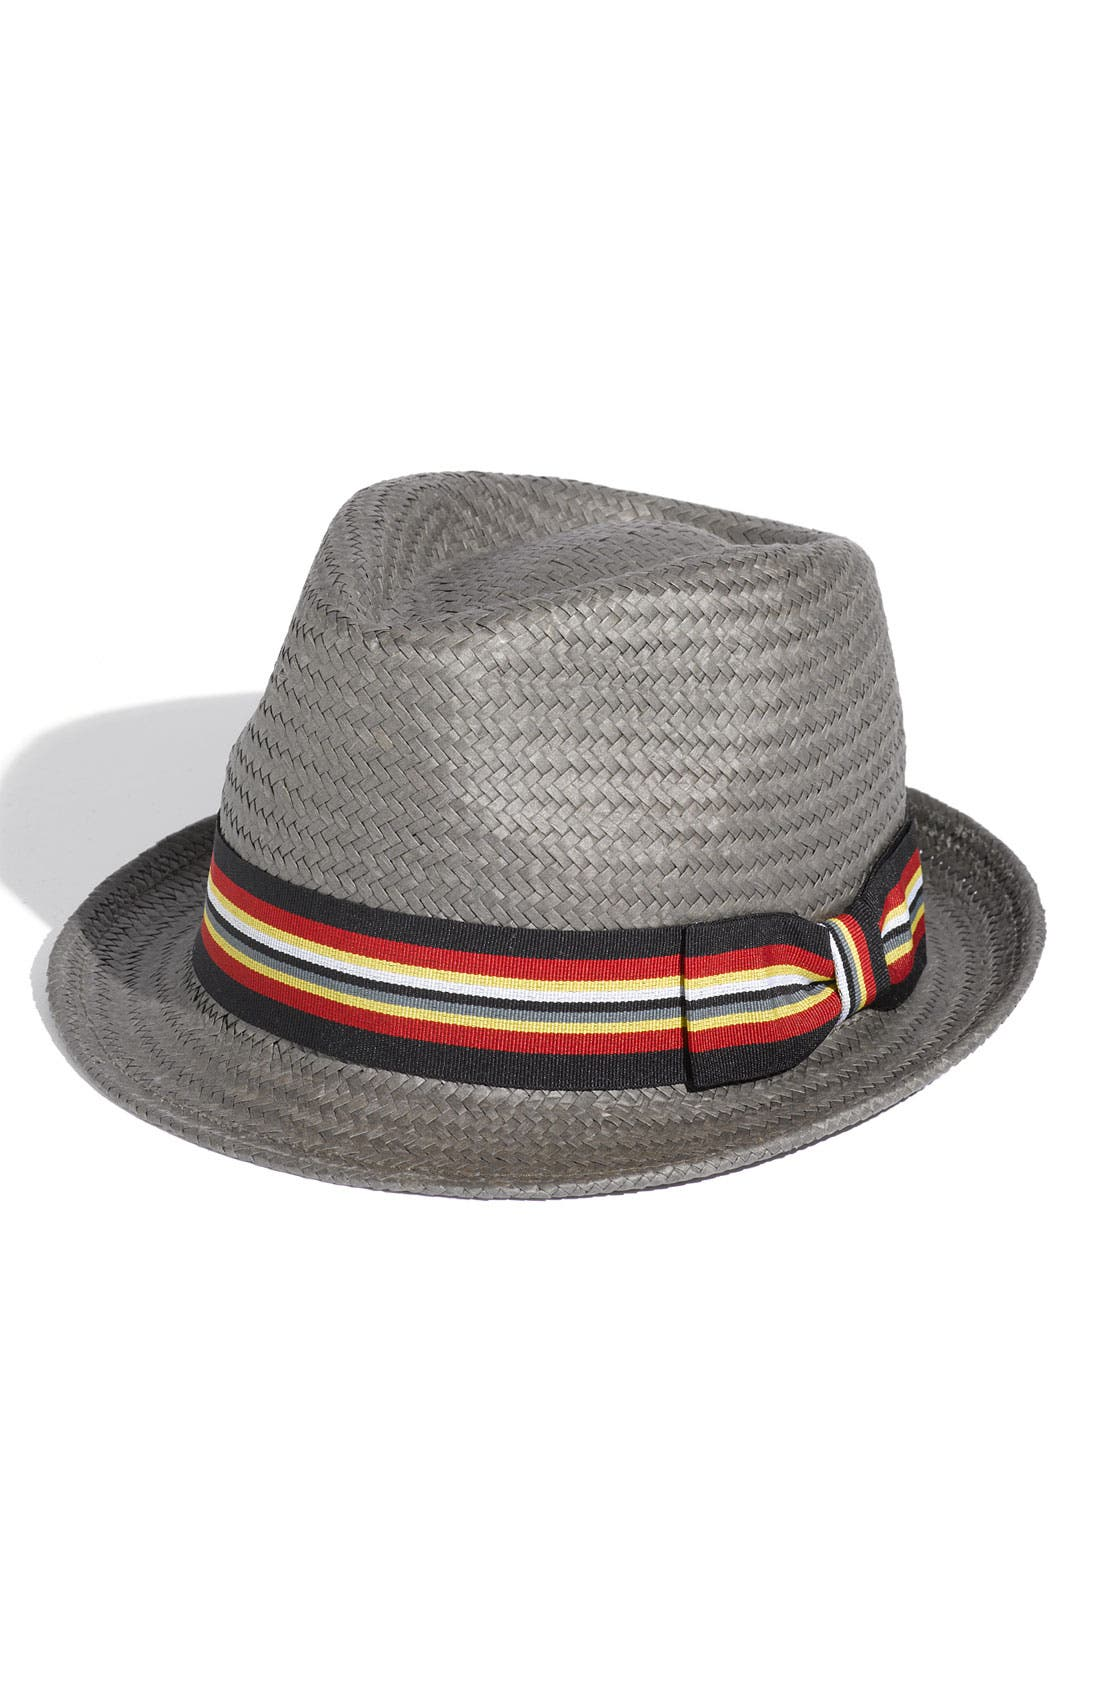 Paper Straw Fedora,                         Main,                         color, 030